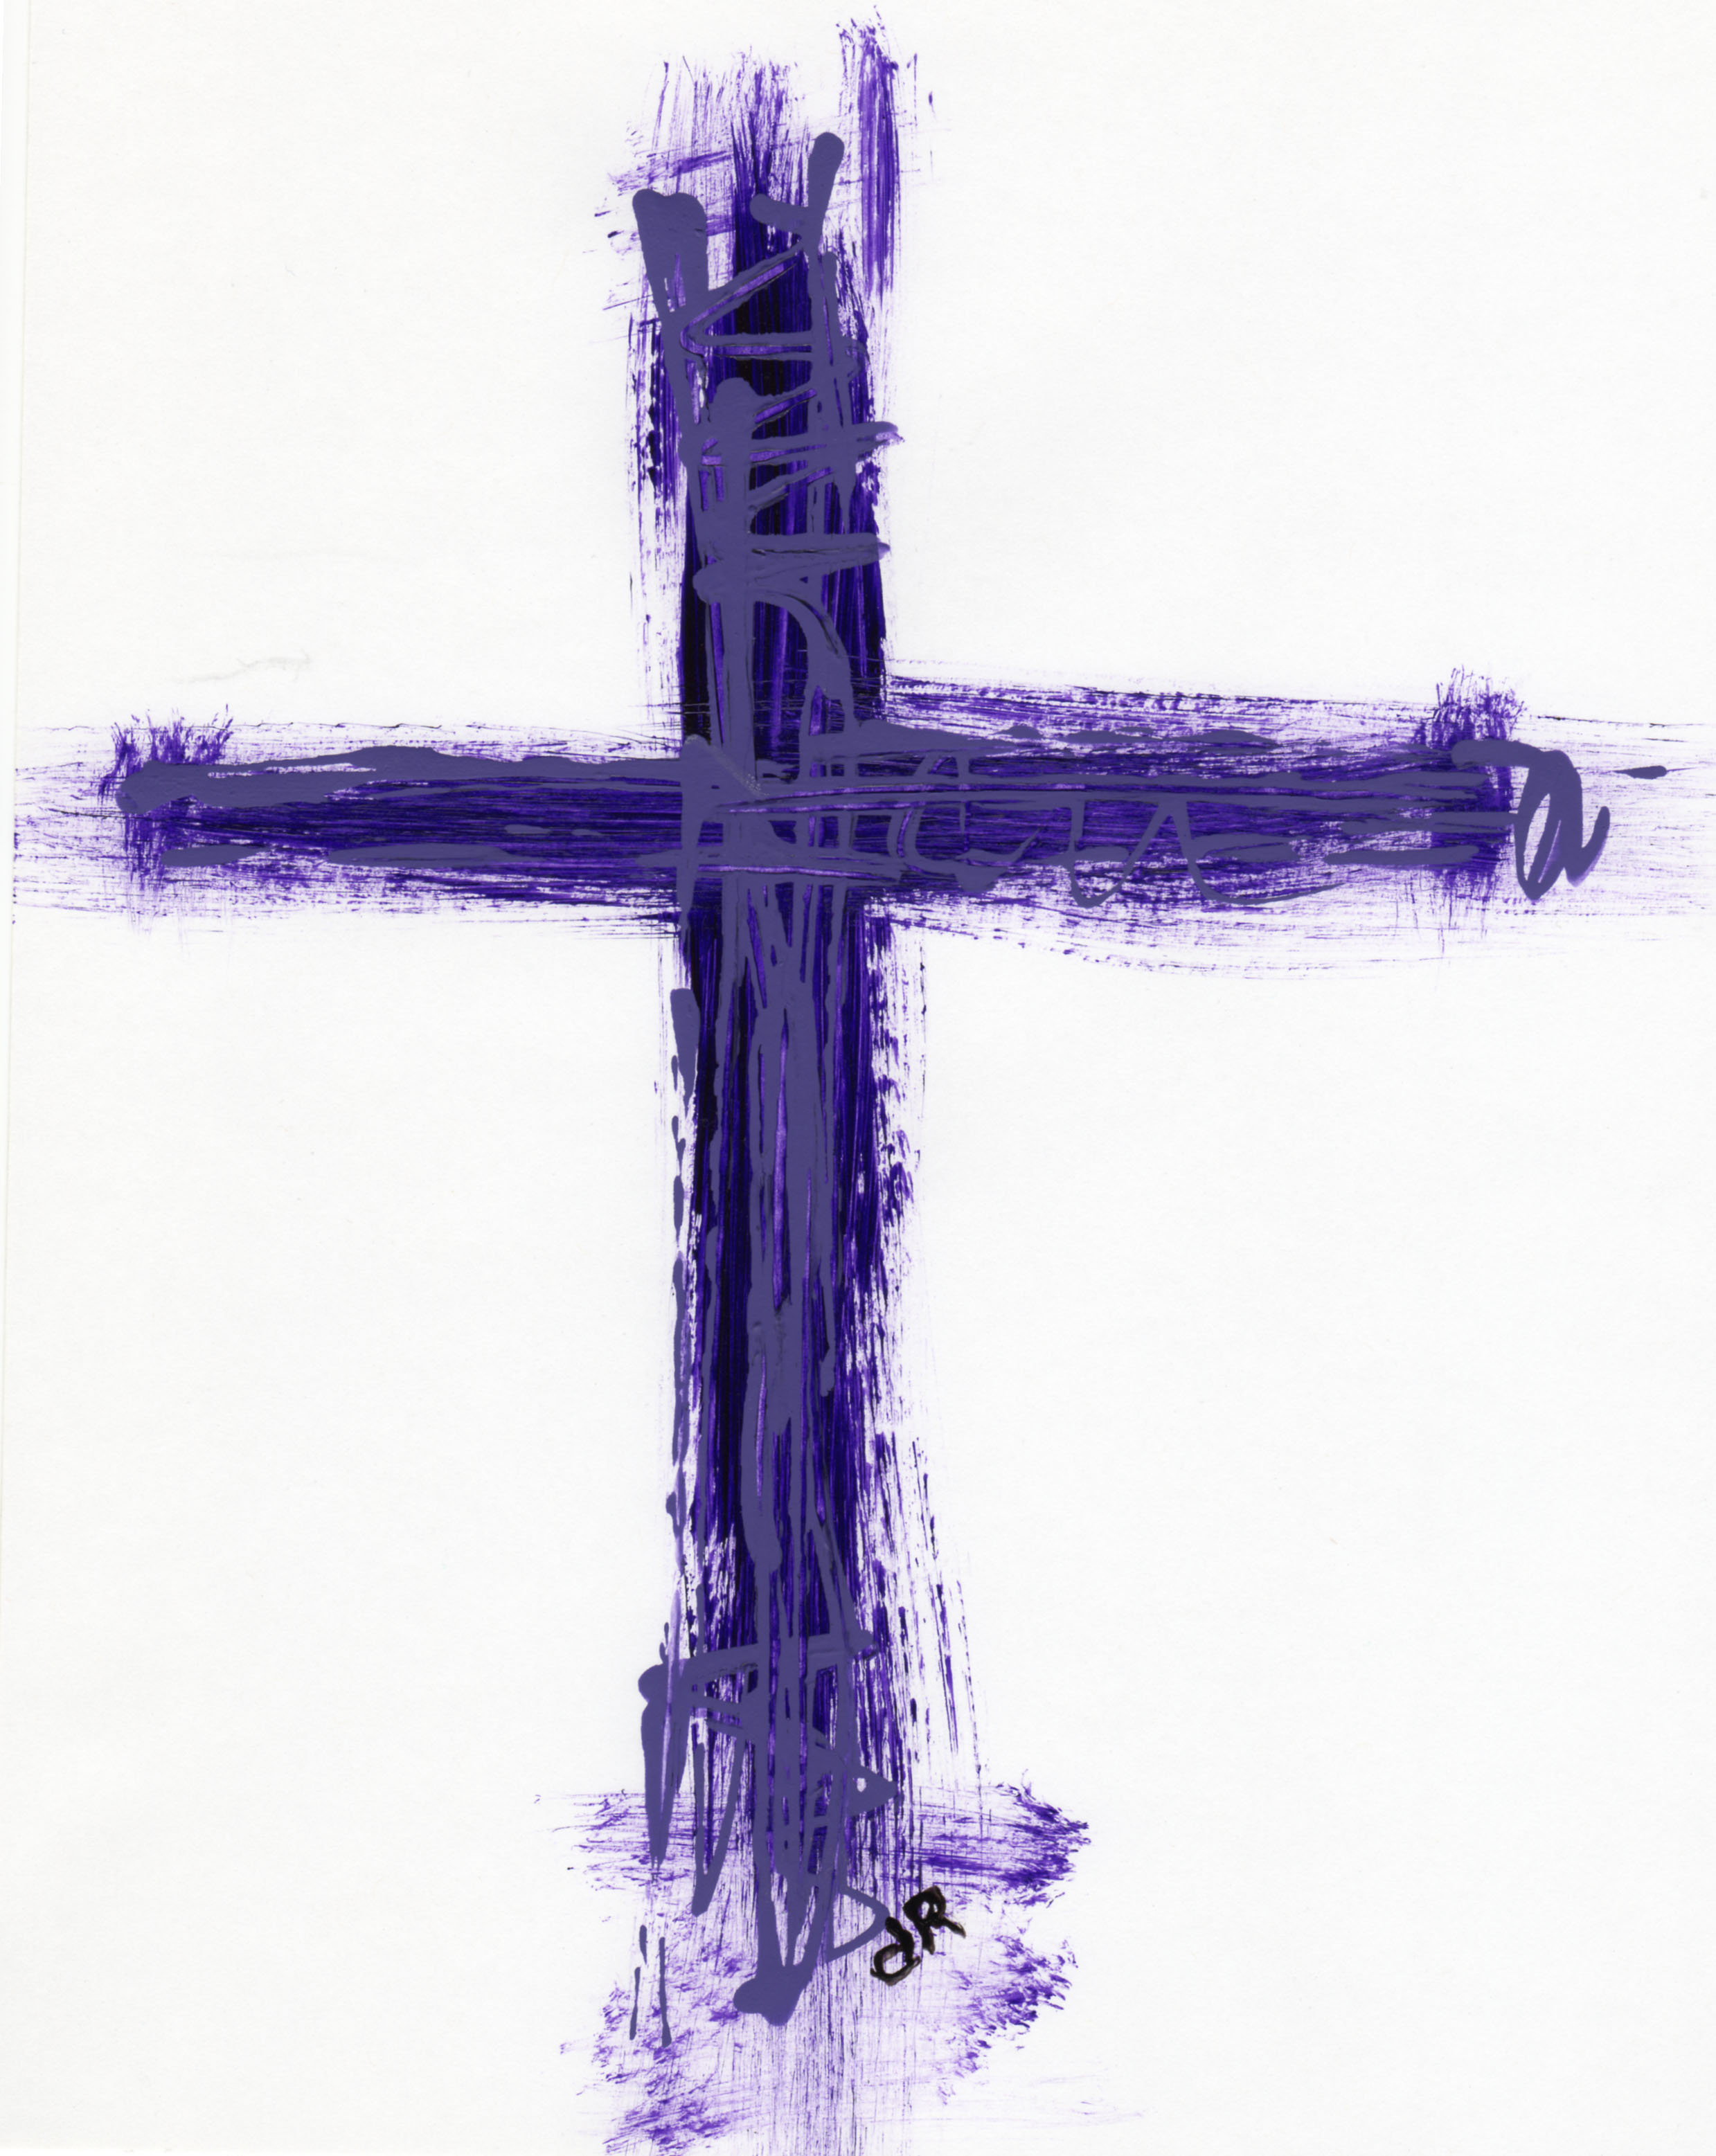 The cove community minute for mission ash wednesday minute for mission ash wednesday buycottarizona